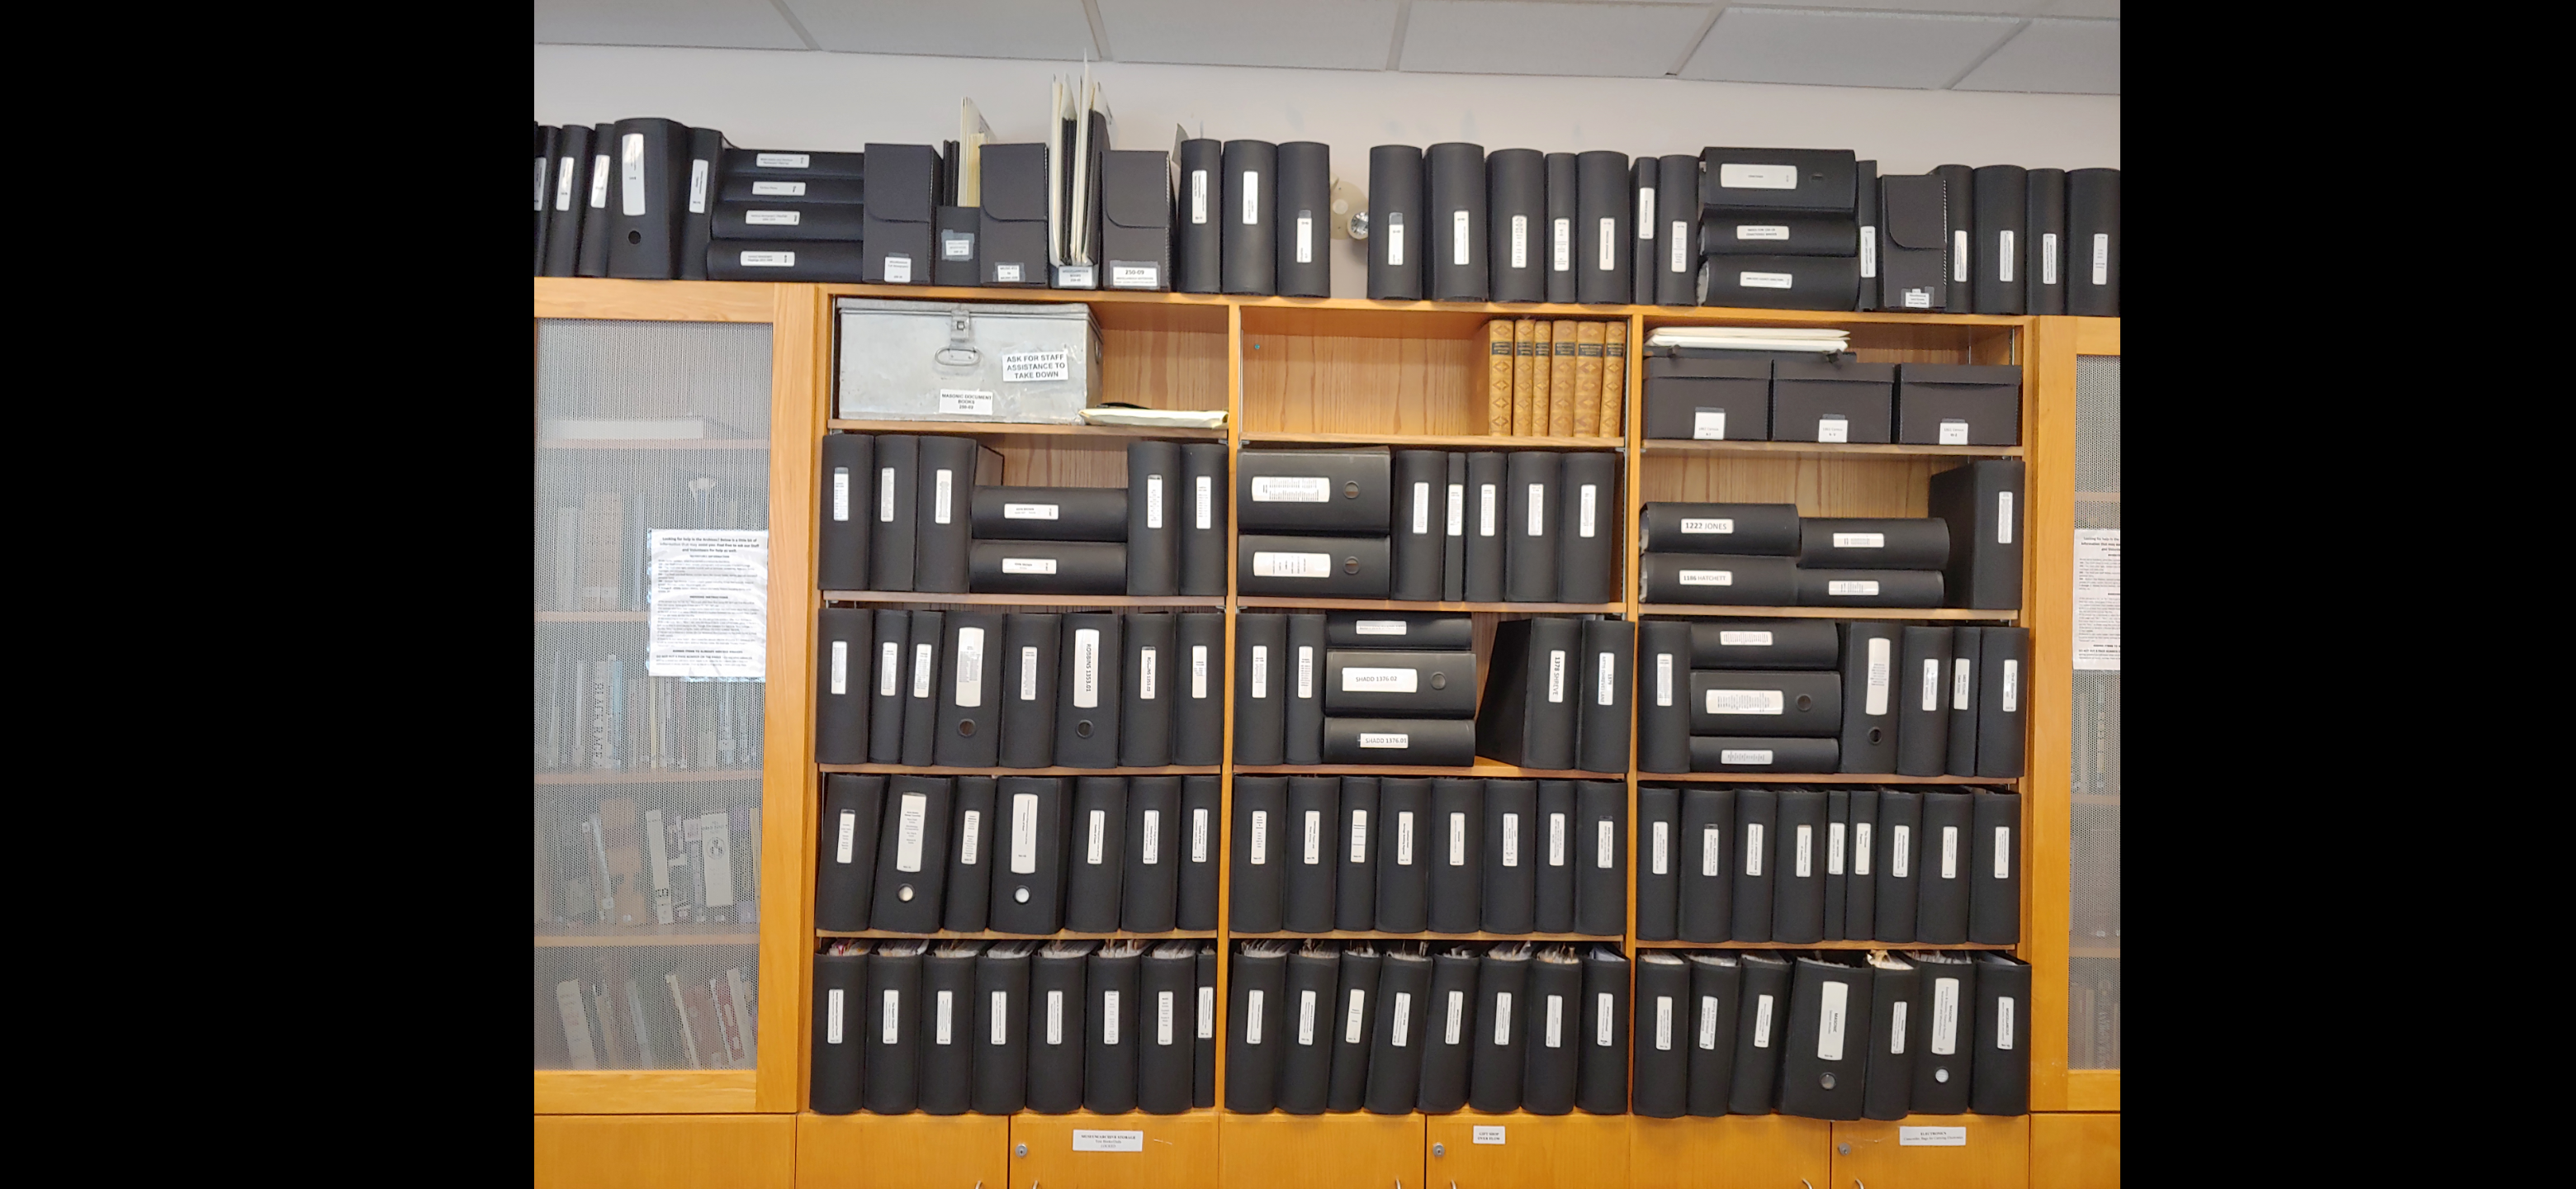 The image is of the CKBHS's collection of binders that hold family histories of Chatham locals. The museum has dedicated years to creating a thorough and comprehensive collection that shares the stories of the community members past and present.